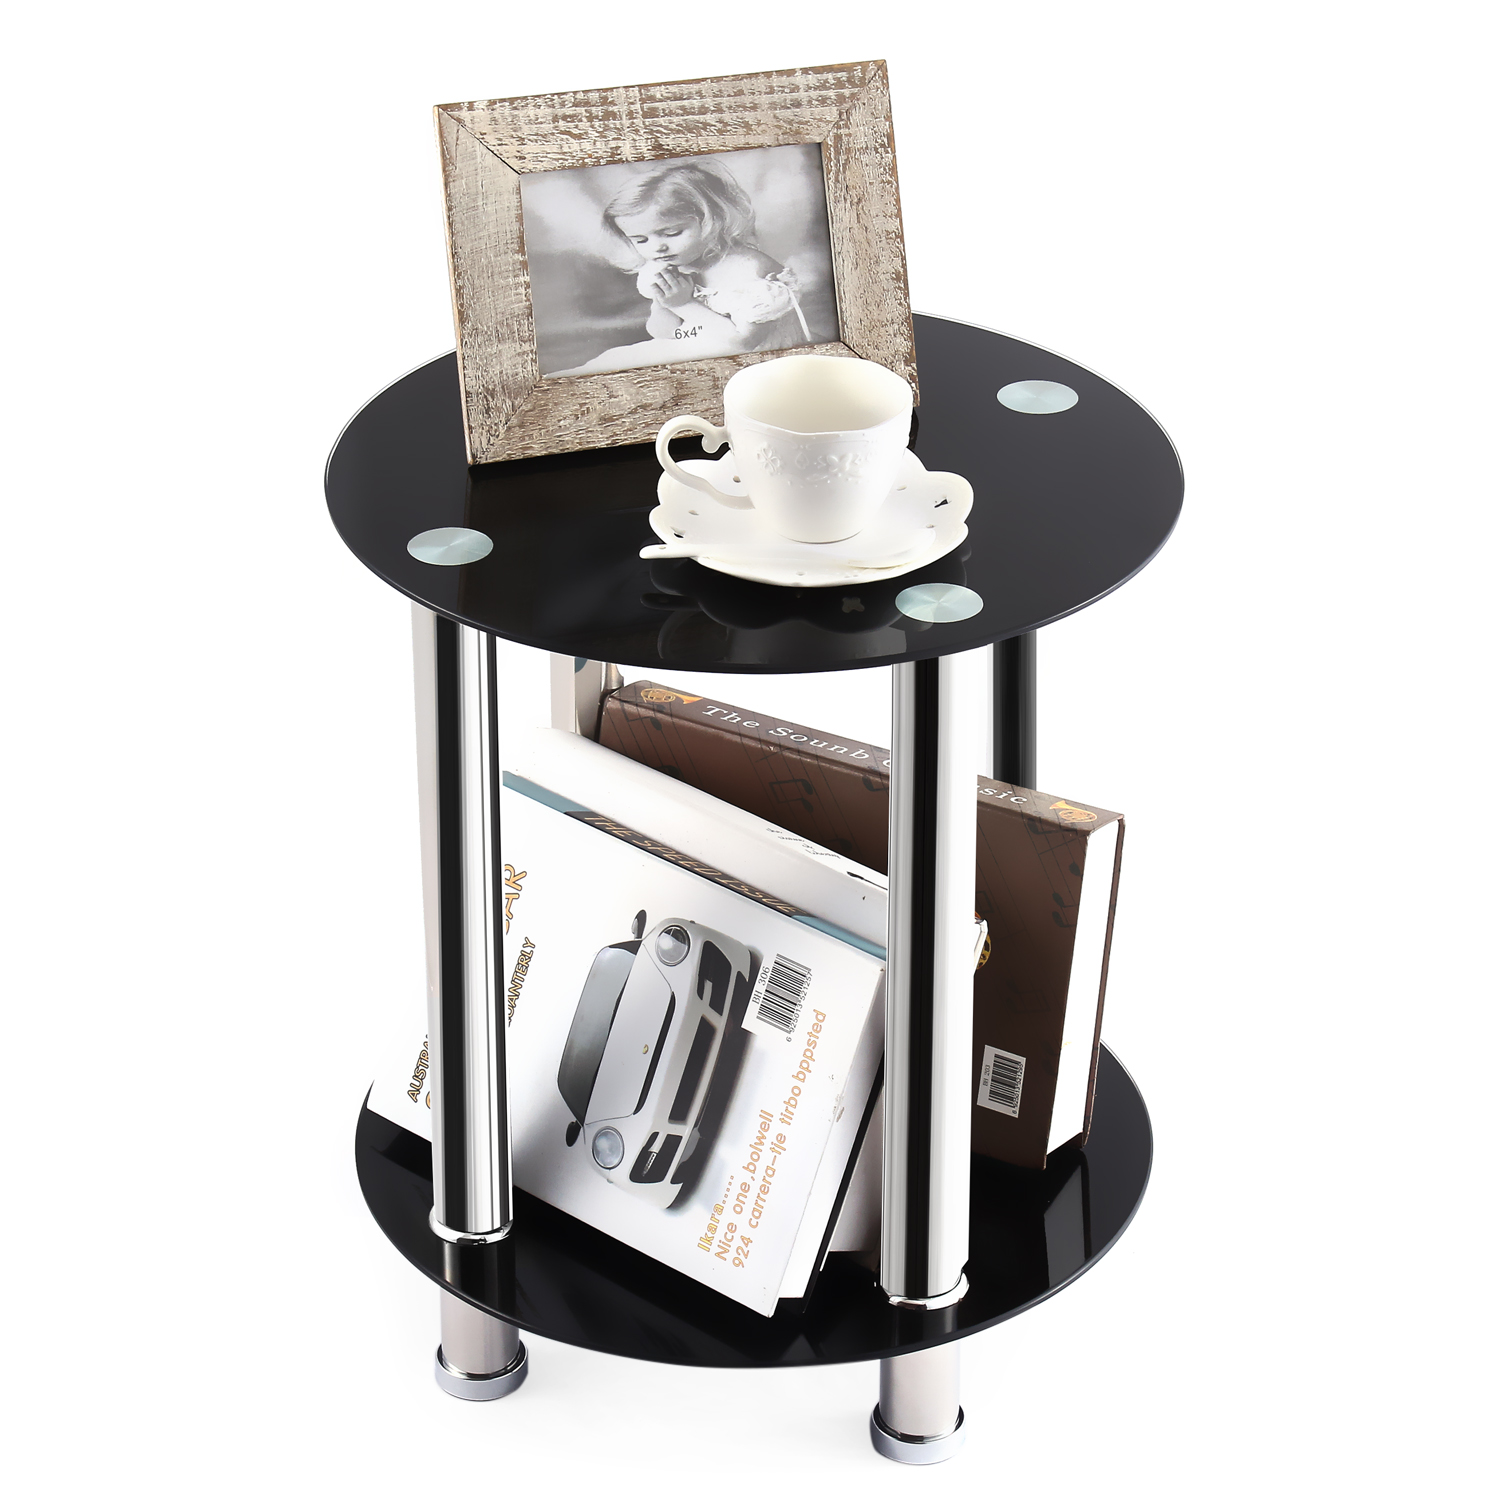 Rfiver 2 Set Square End Table, Sofa Table, Night Table with Tempered Glass Shelves